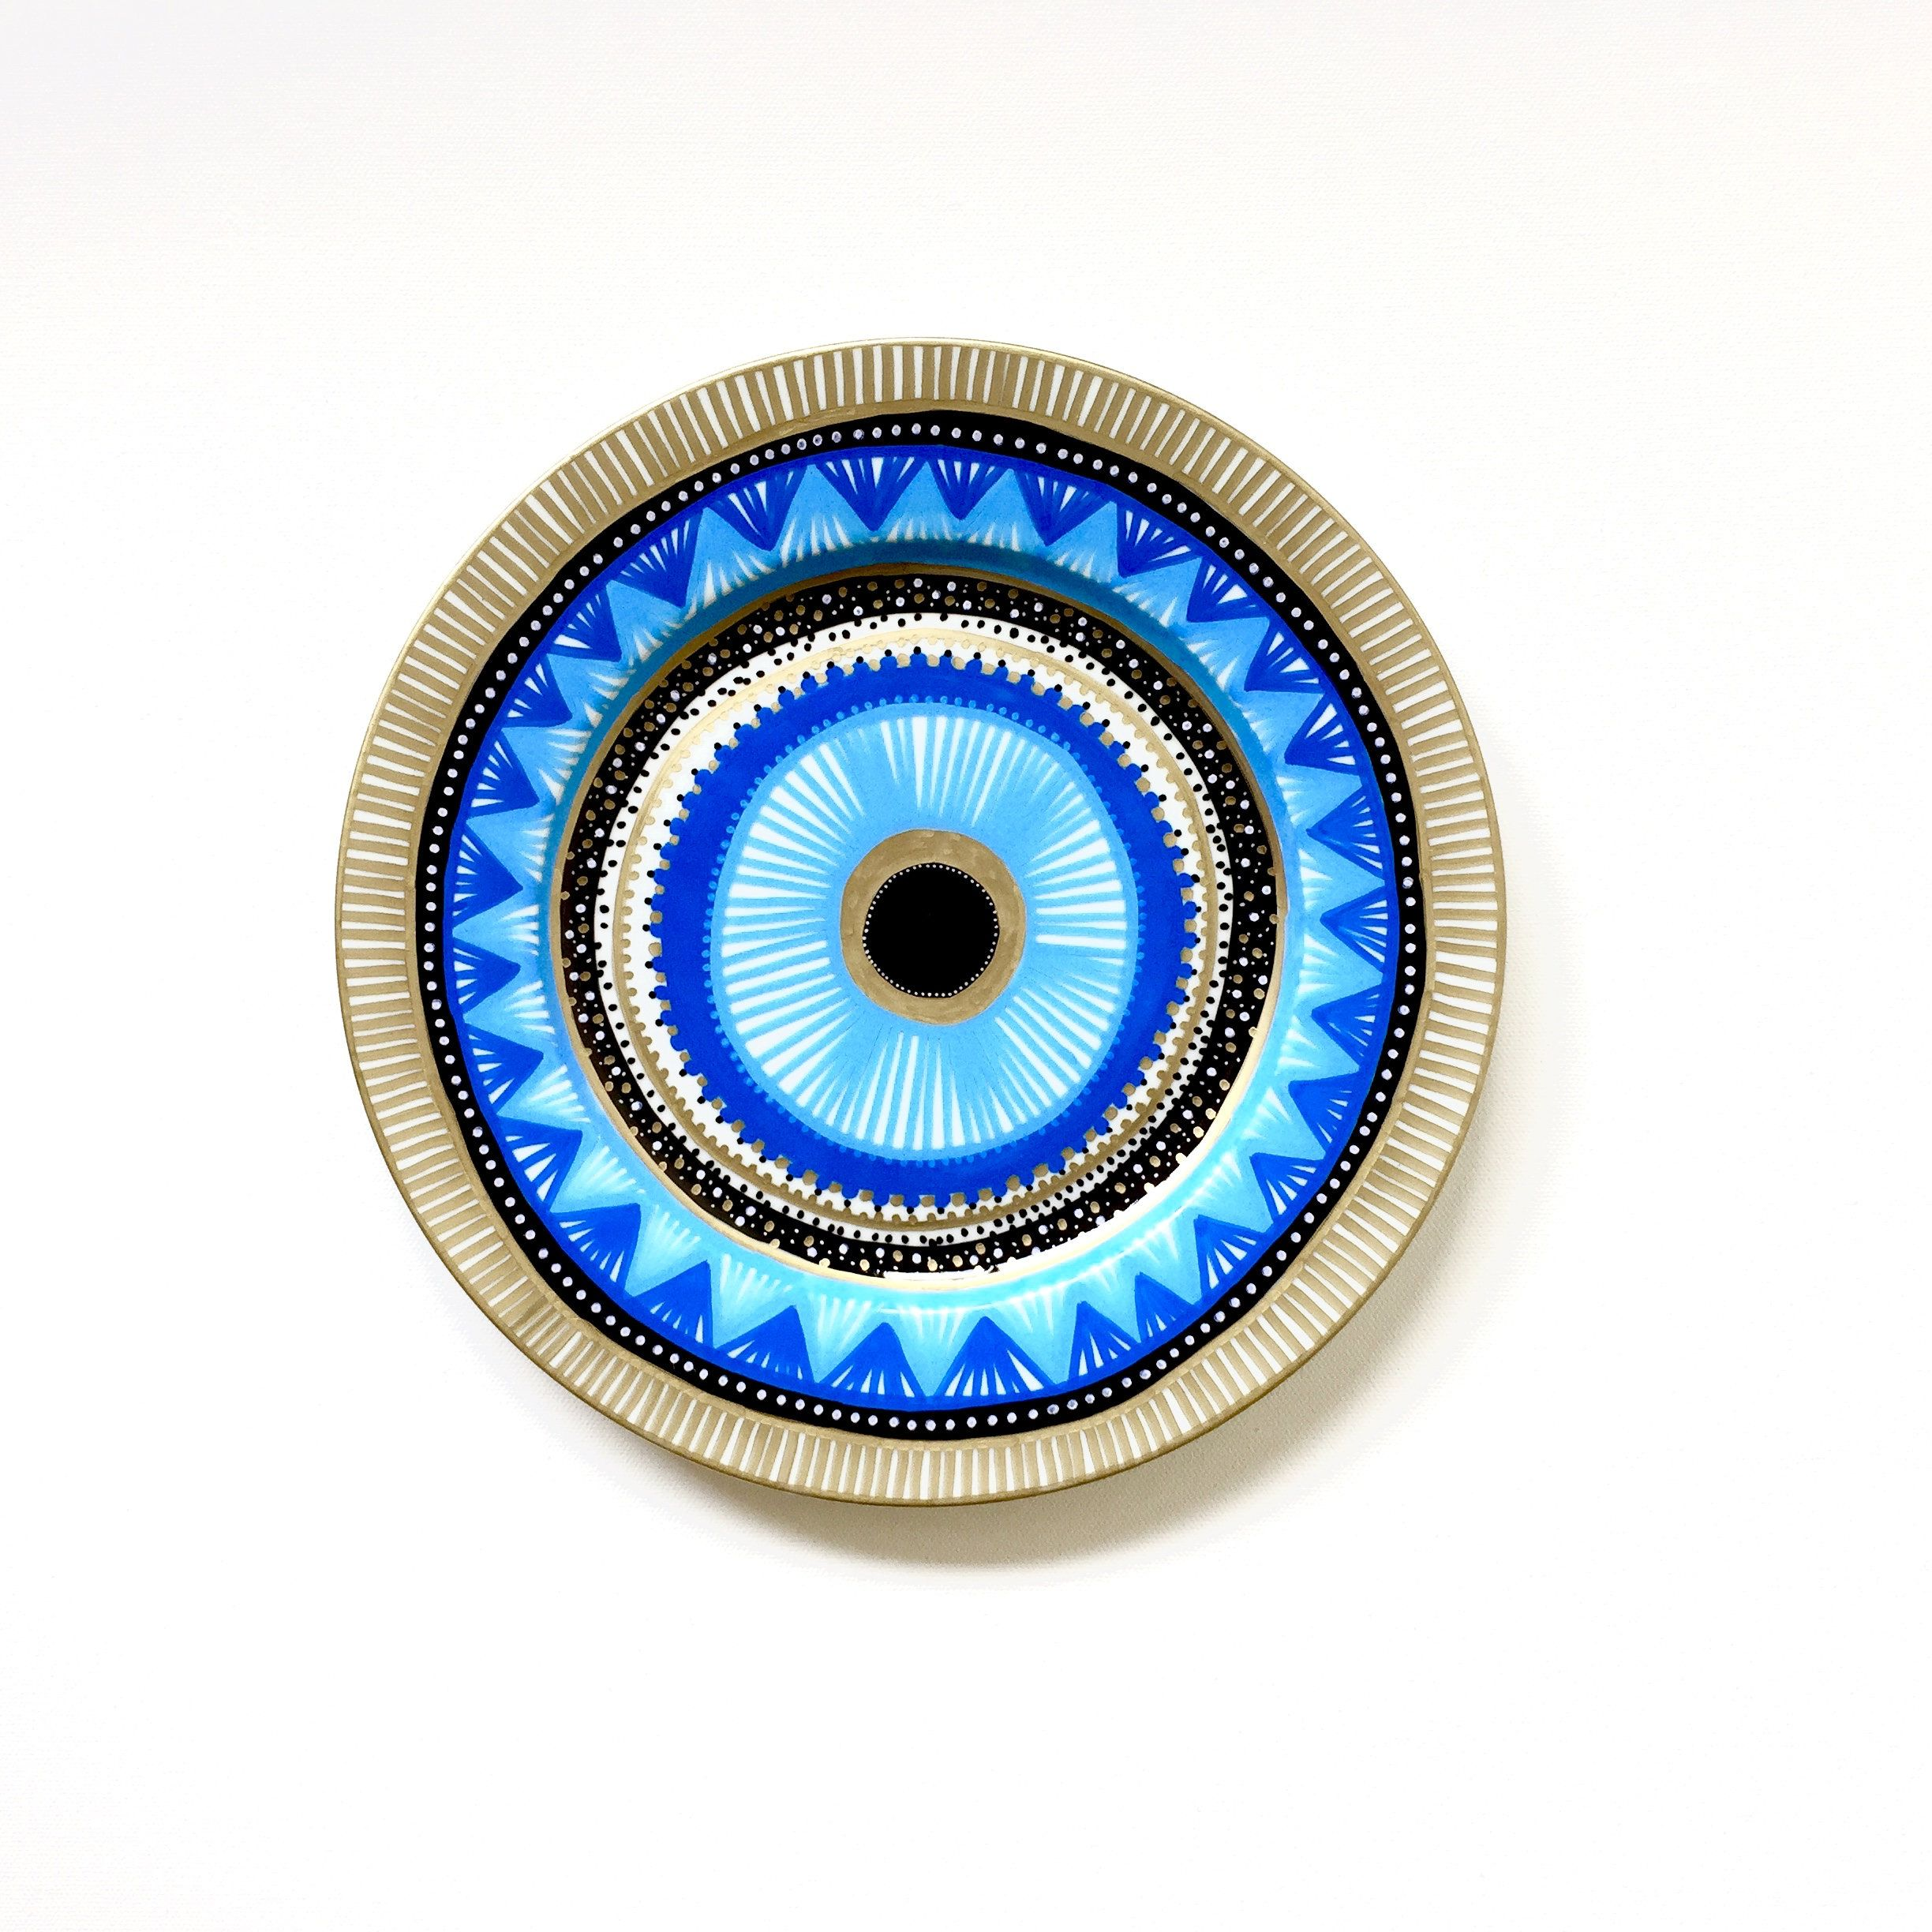 Blue Decorative Wall Plates Mesmerizing Evil Eye Decor  Decorative Plate  Mandala Decor  Wall Hanging Decorating Design